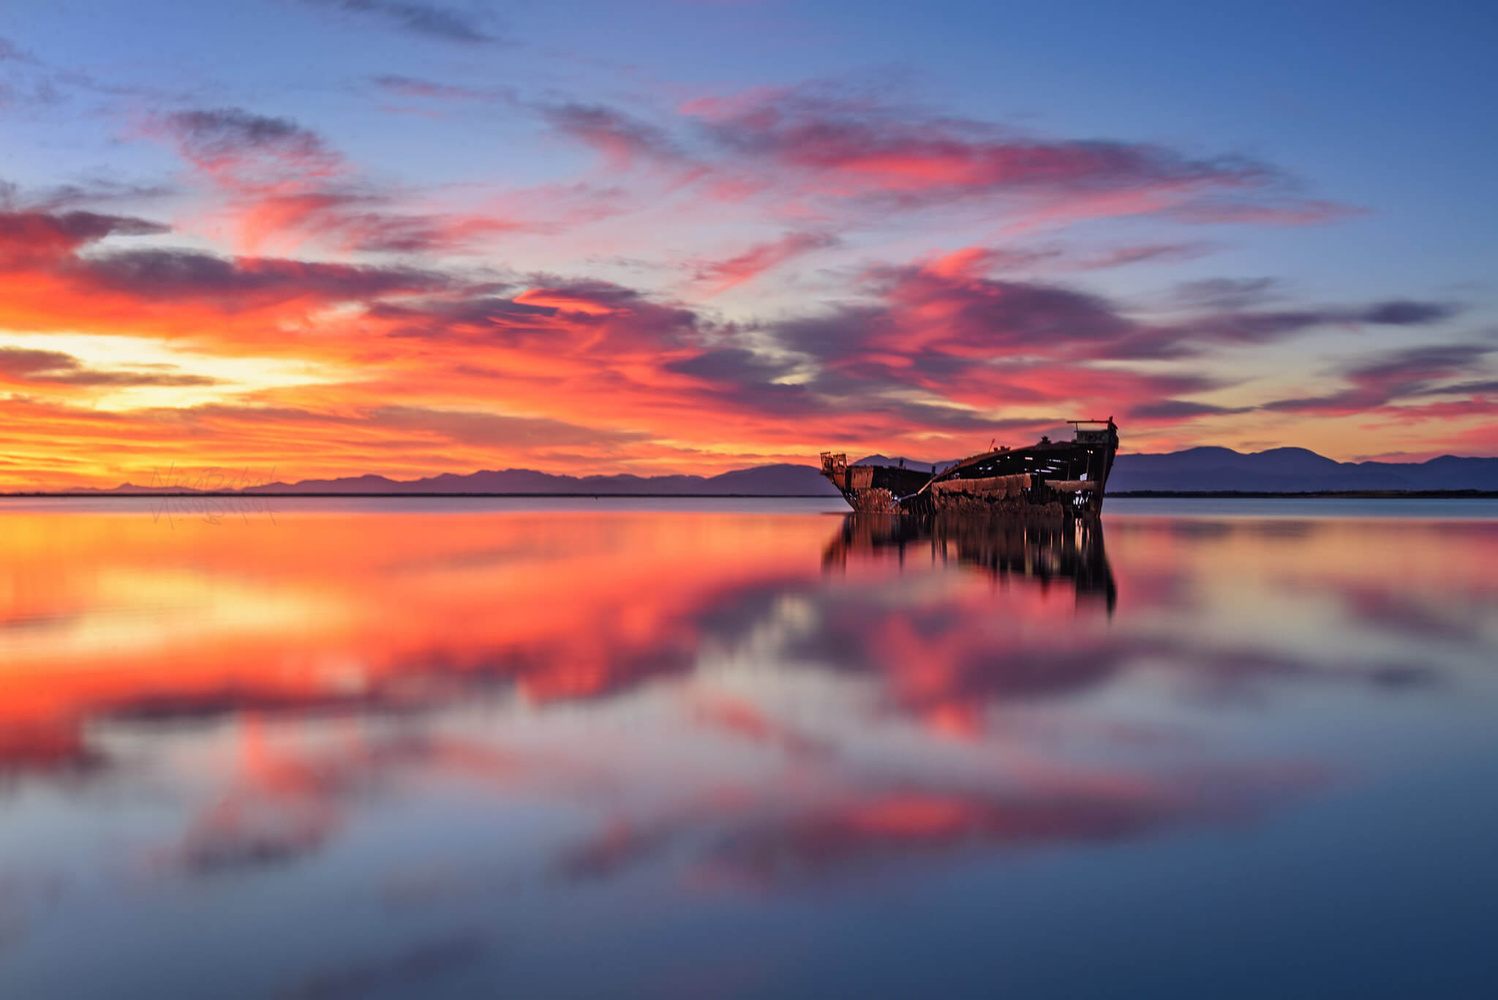 Sunrise in Motueka New Zealand by Nico BABOT